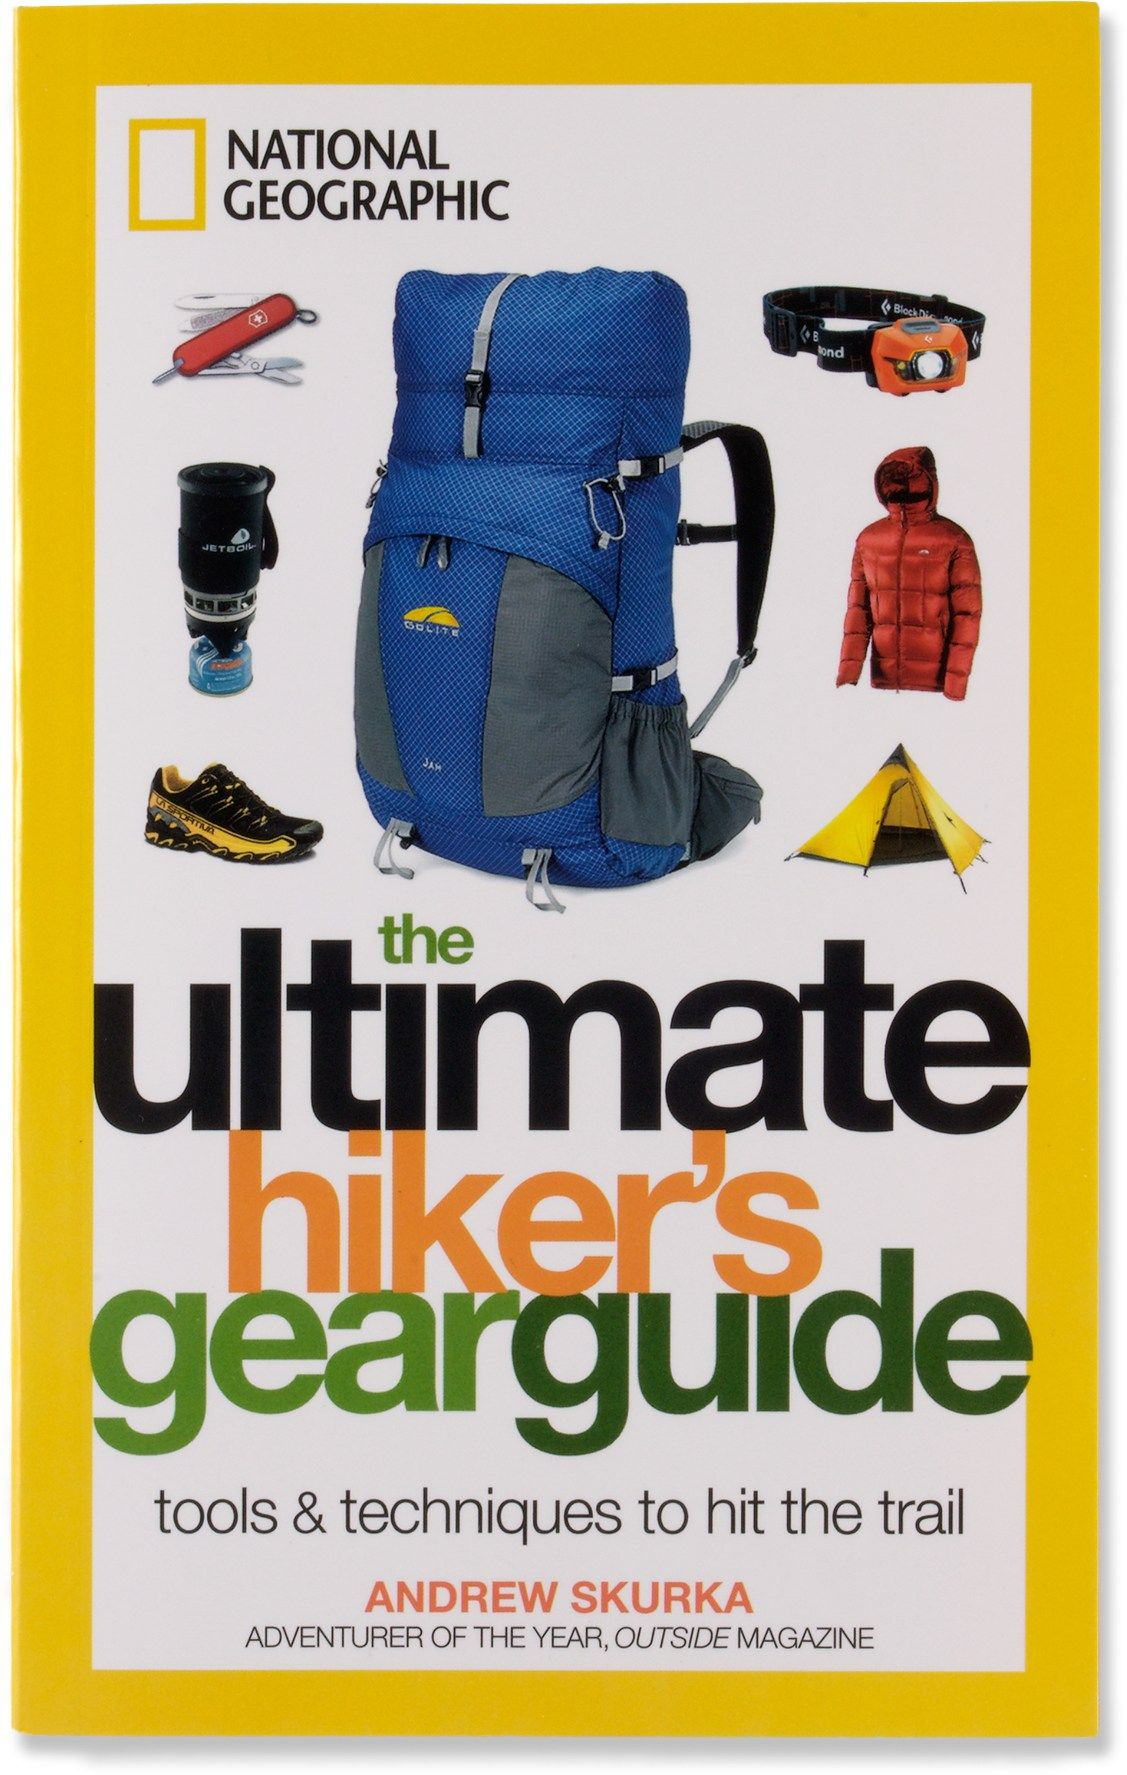 The ultimate hiker's gear guide book review youtube.